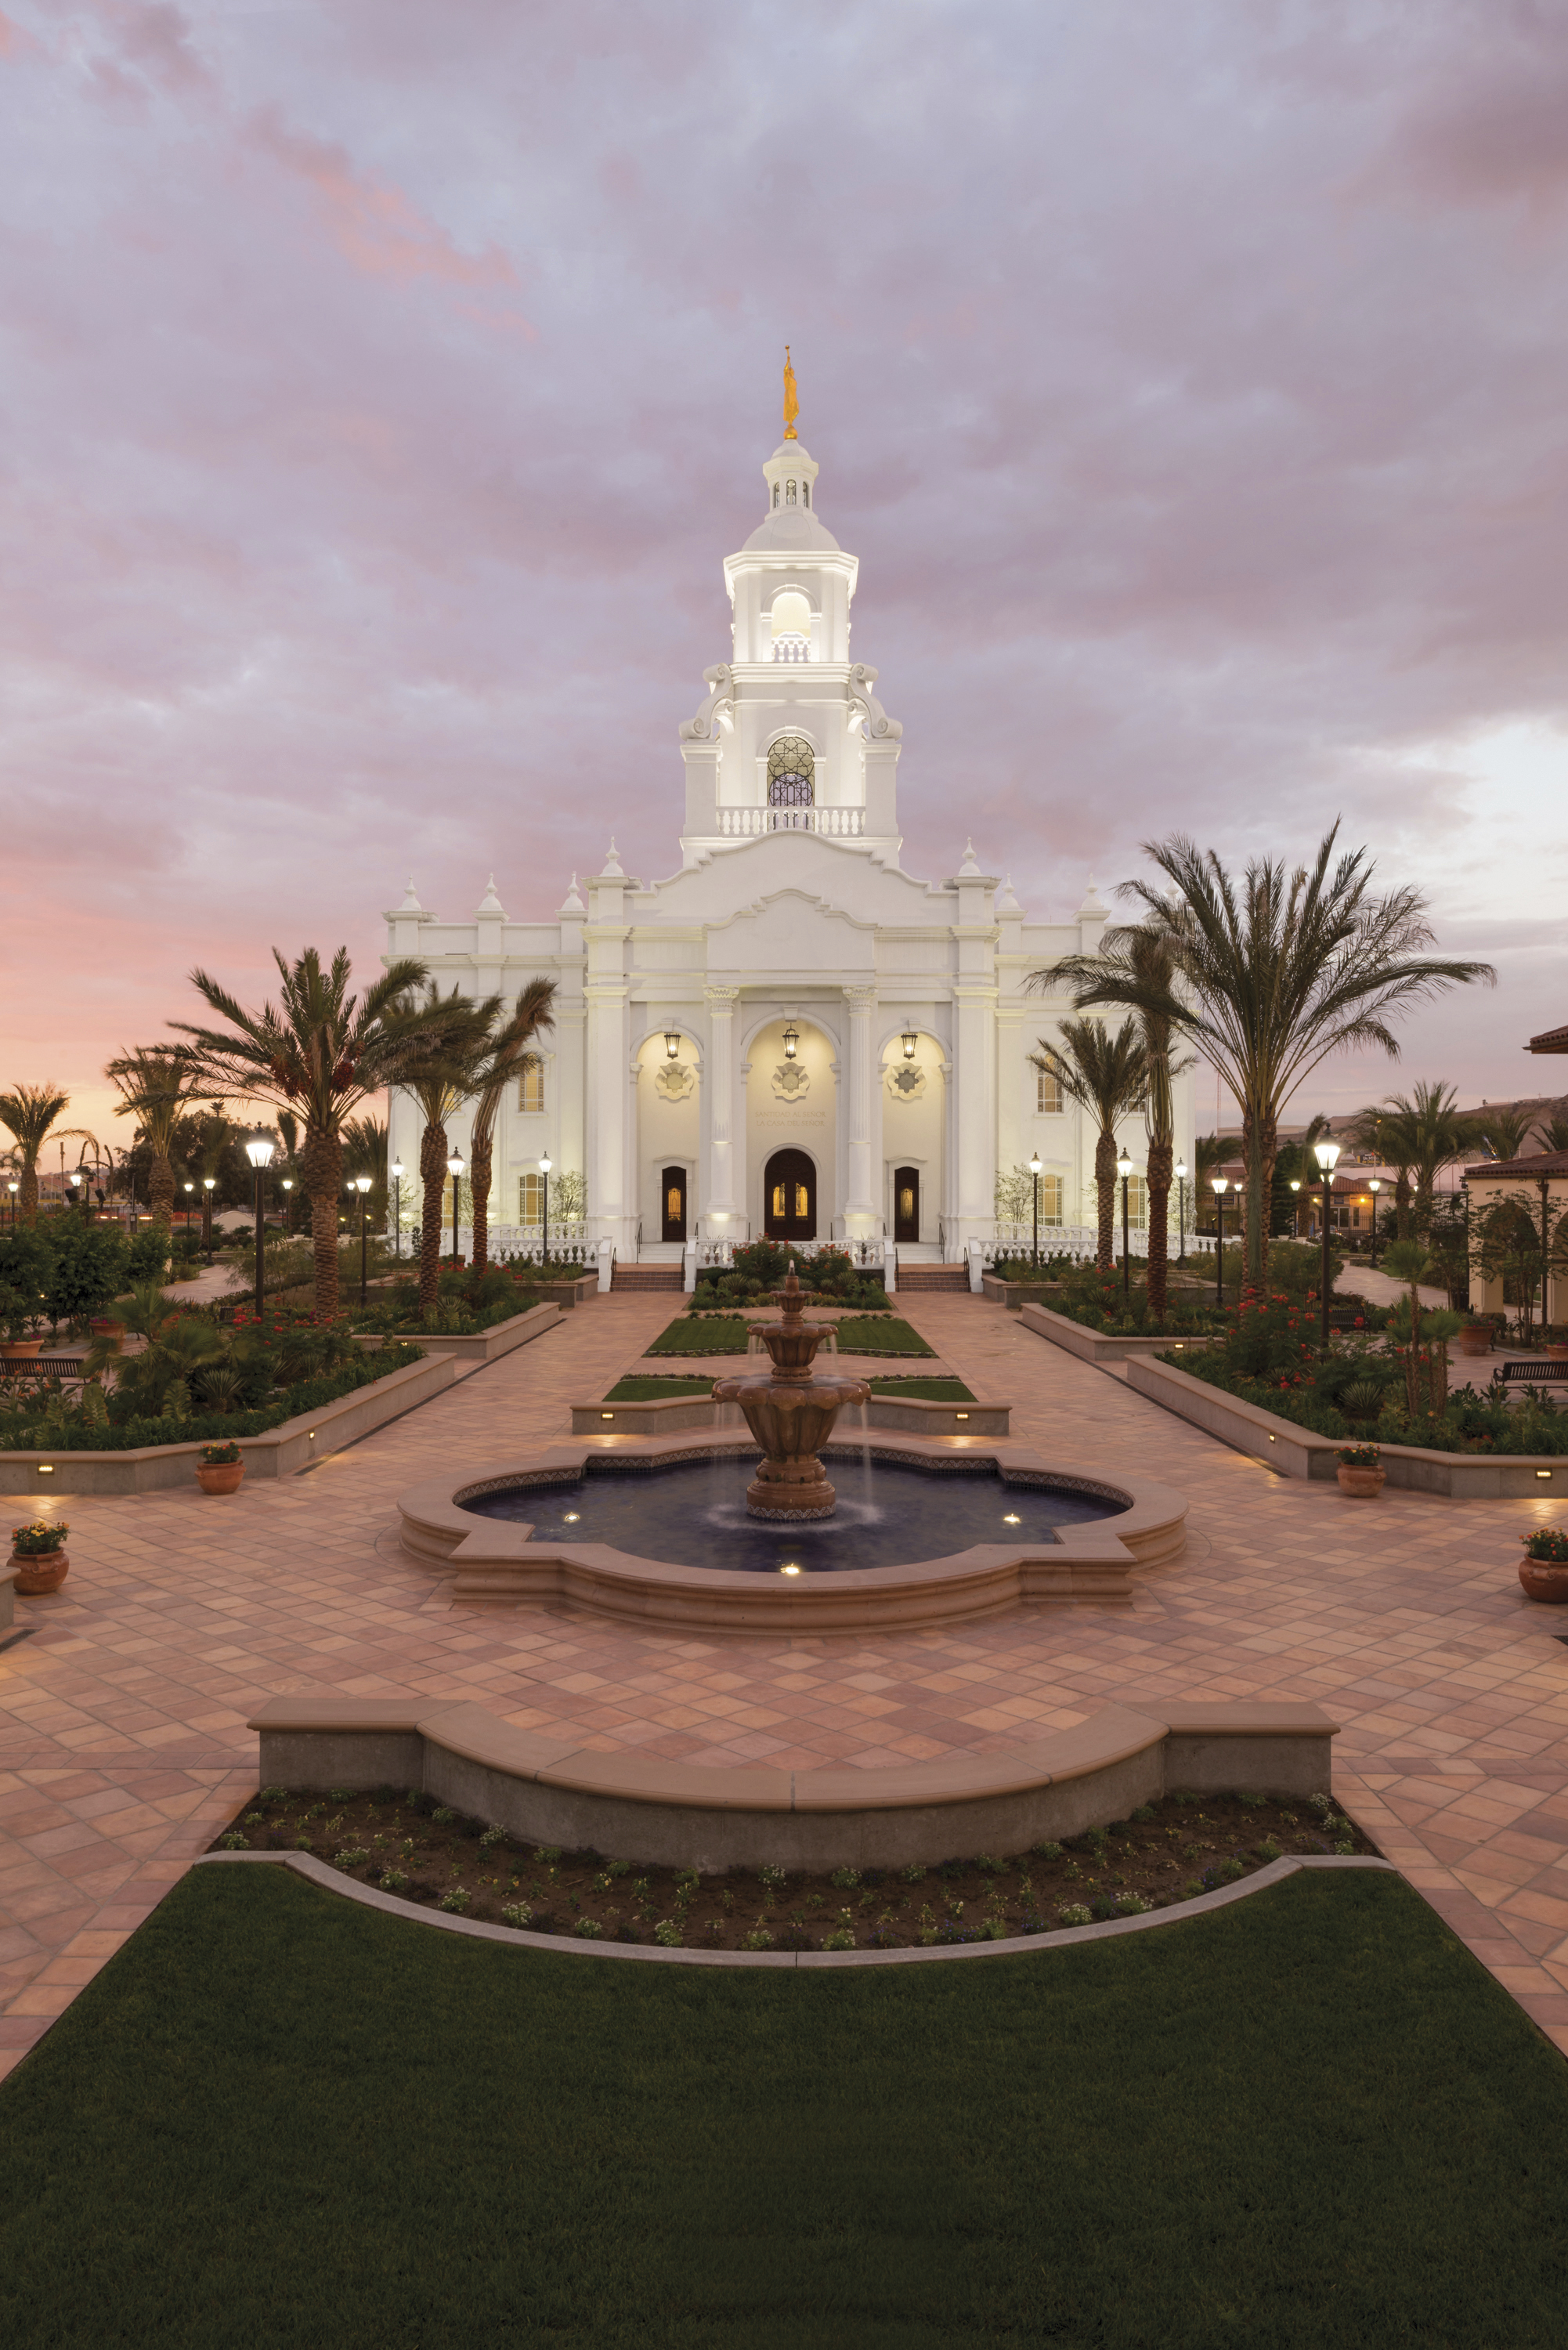 A sunset behind the Tijuana Mexico Temple.